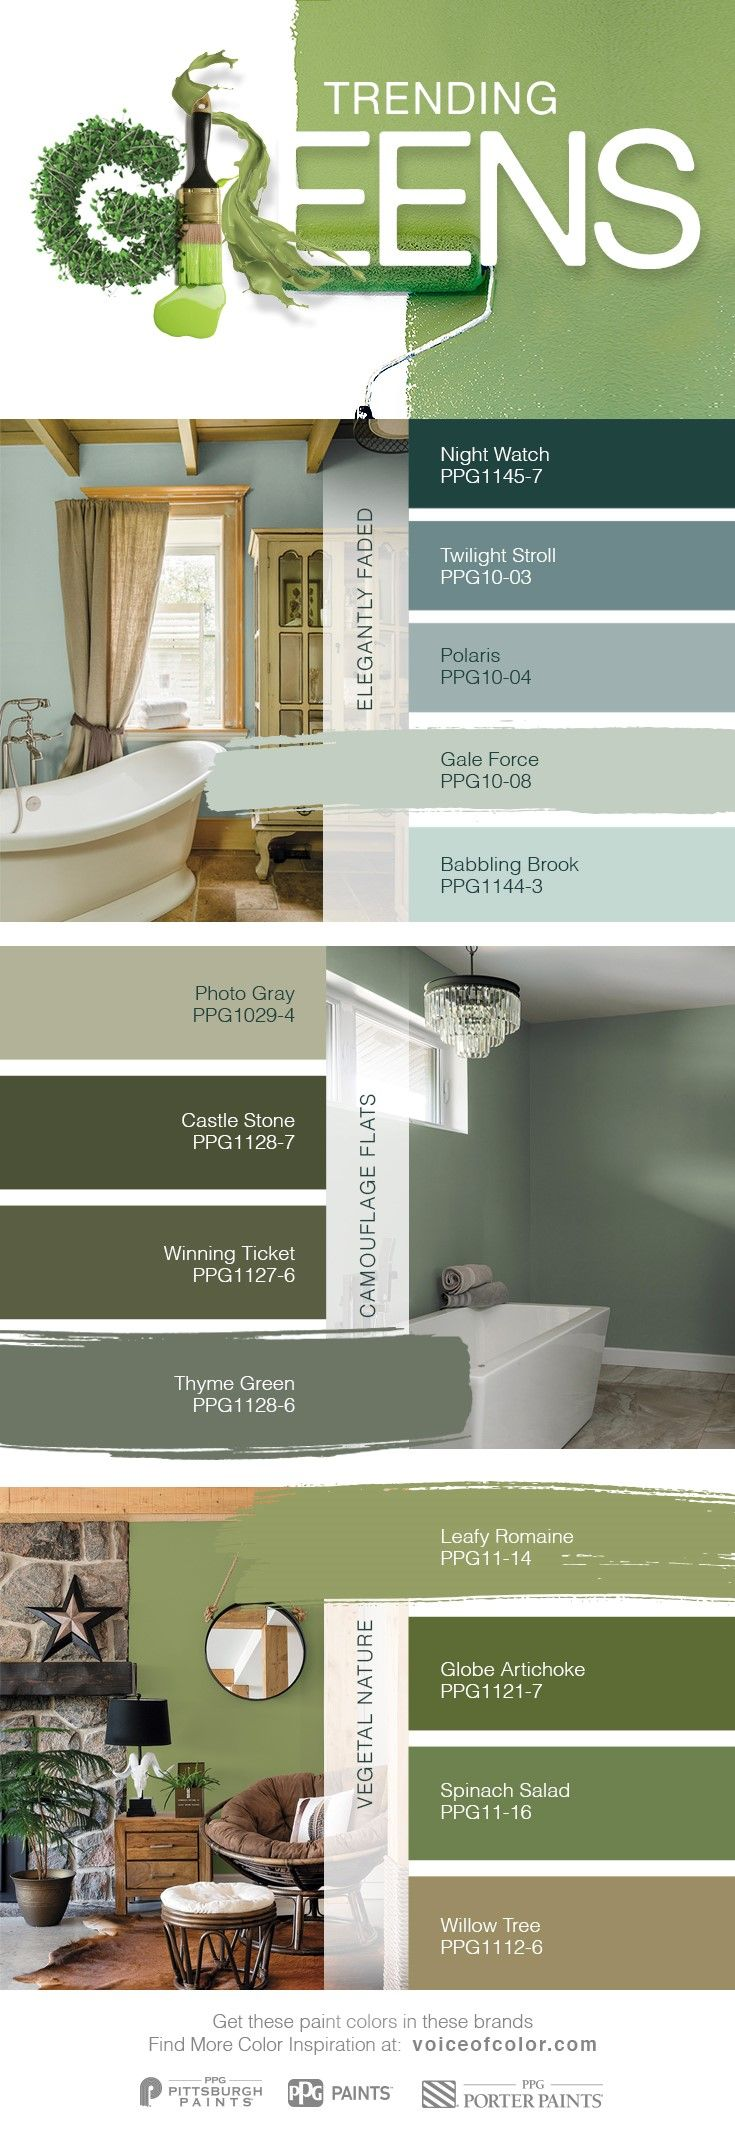 Best 20+ Hallway Paint Colors Ideas On Pinterest | Hallway Colors, Hallway  Paint Inspiration And House Color Schemes Part 77